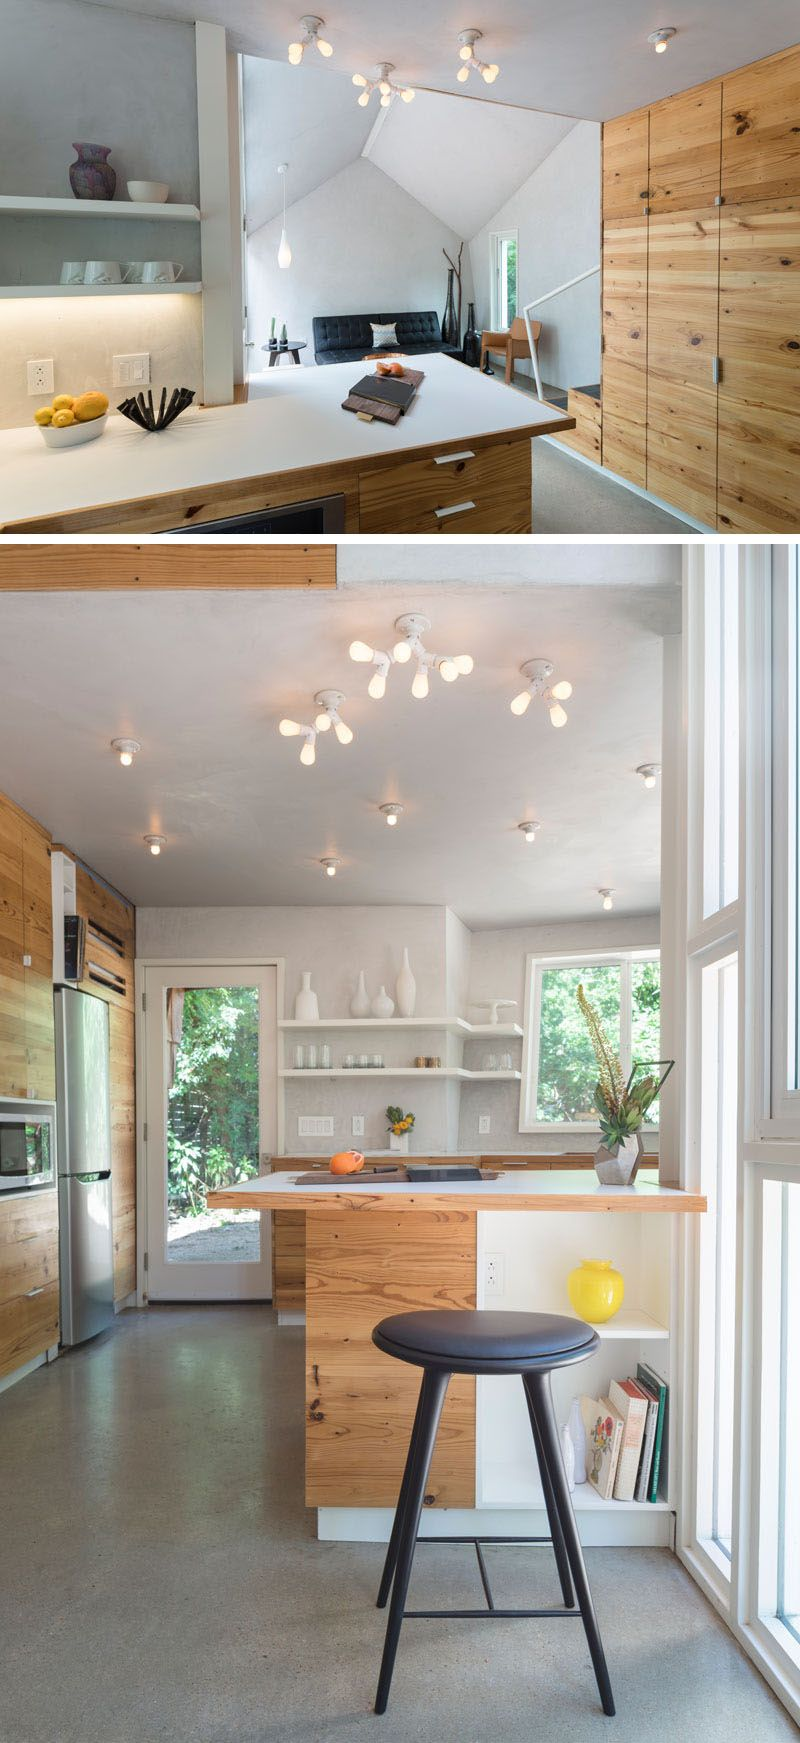 shingle clad angled walls were used in the design of this small rh pinterest com